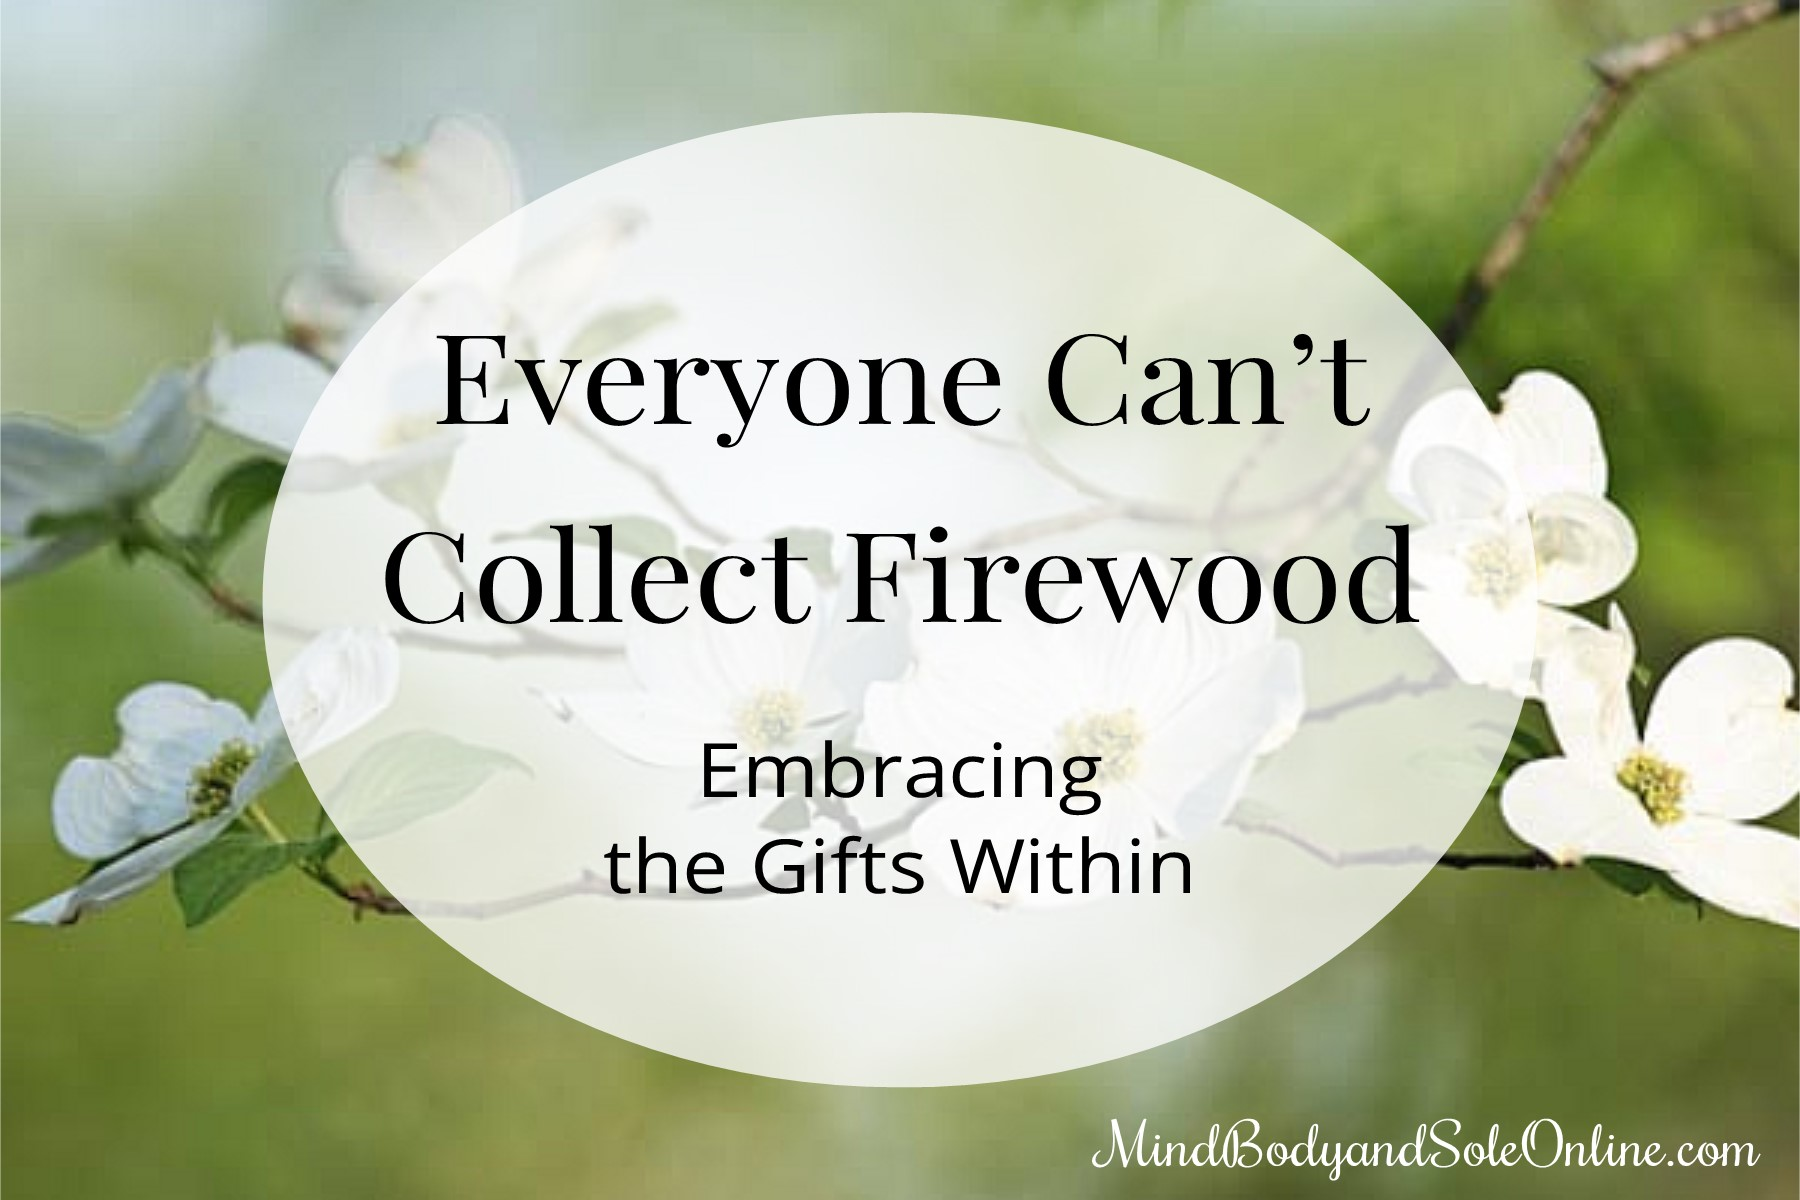 Everyone Can't Collect Firewood